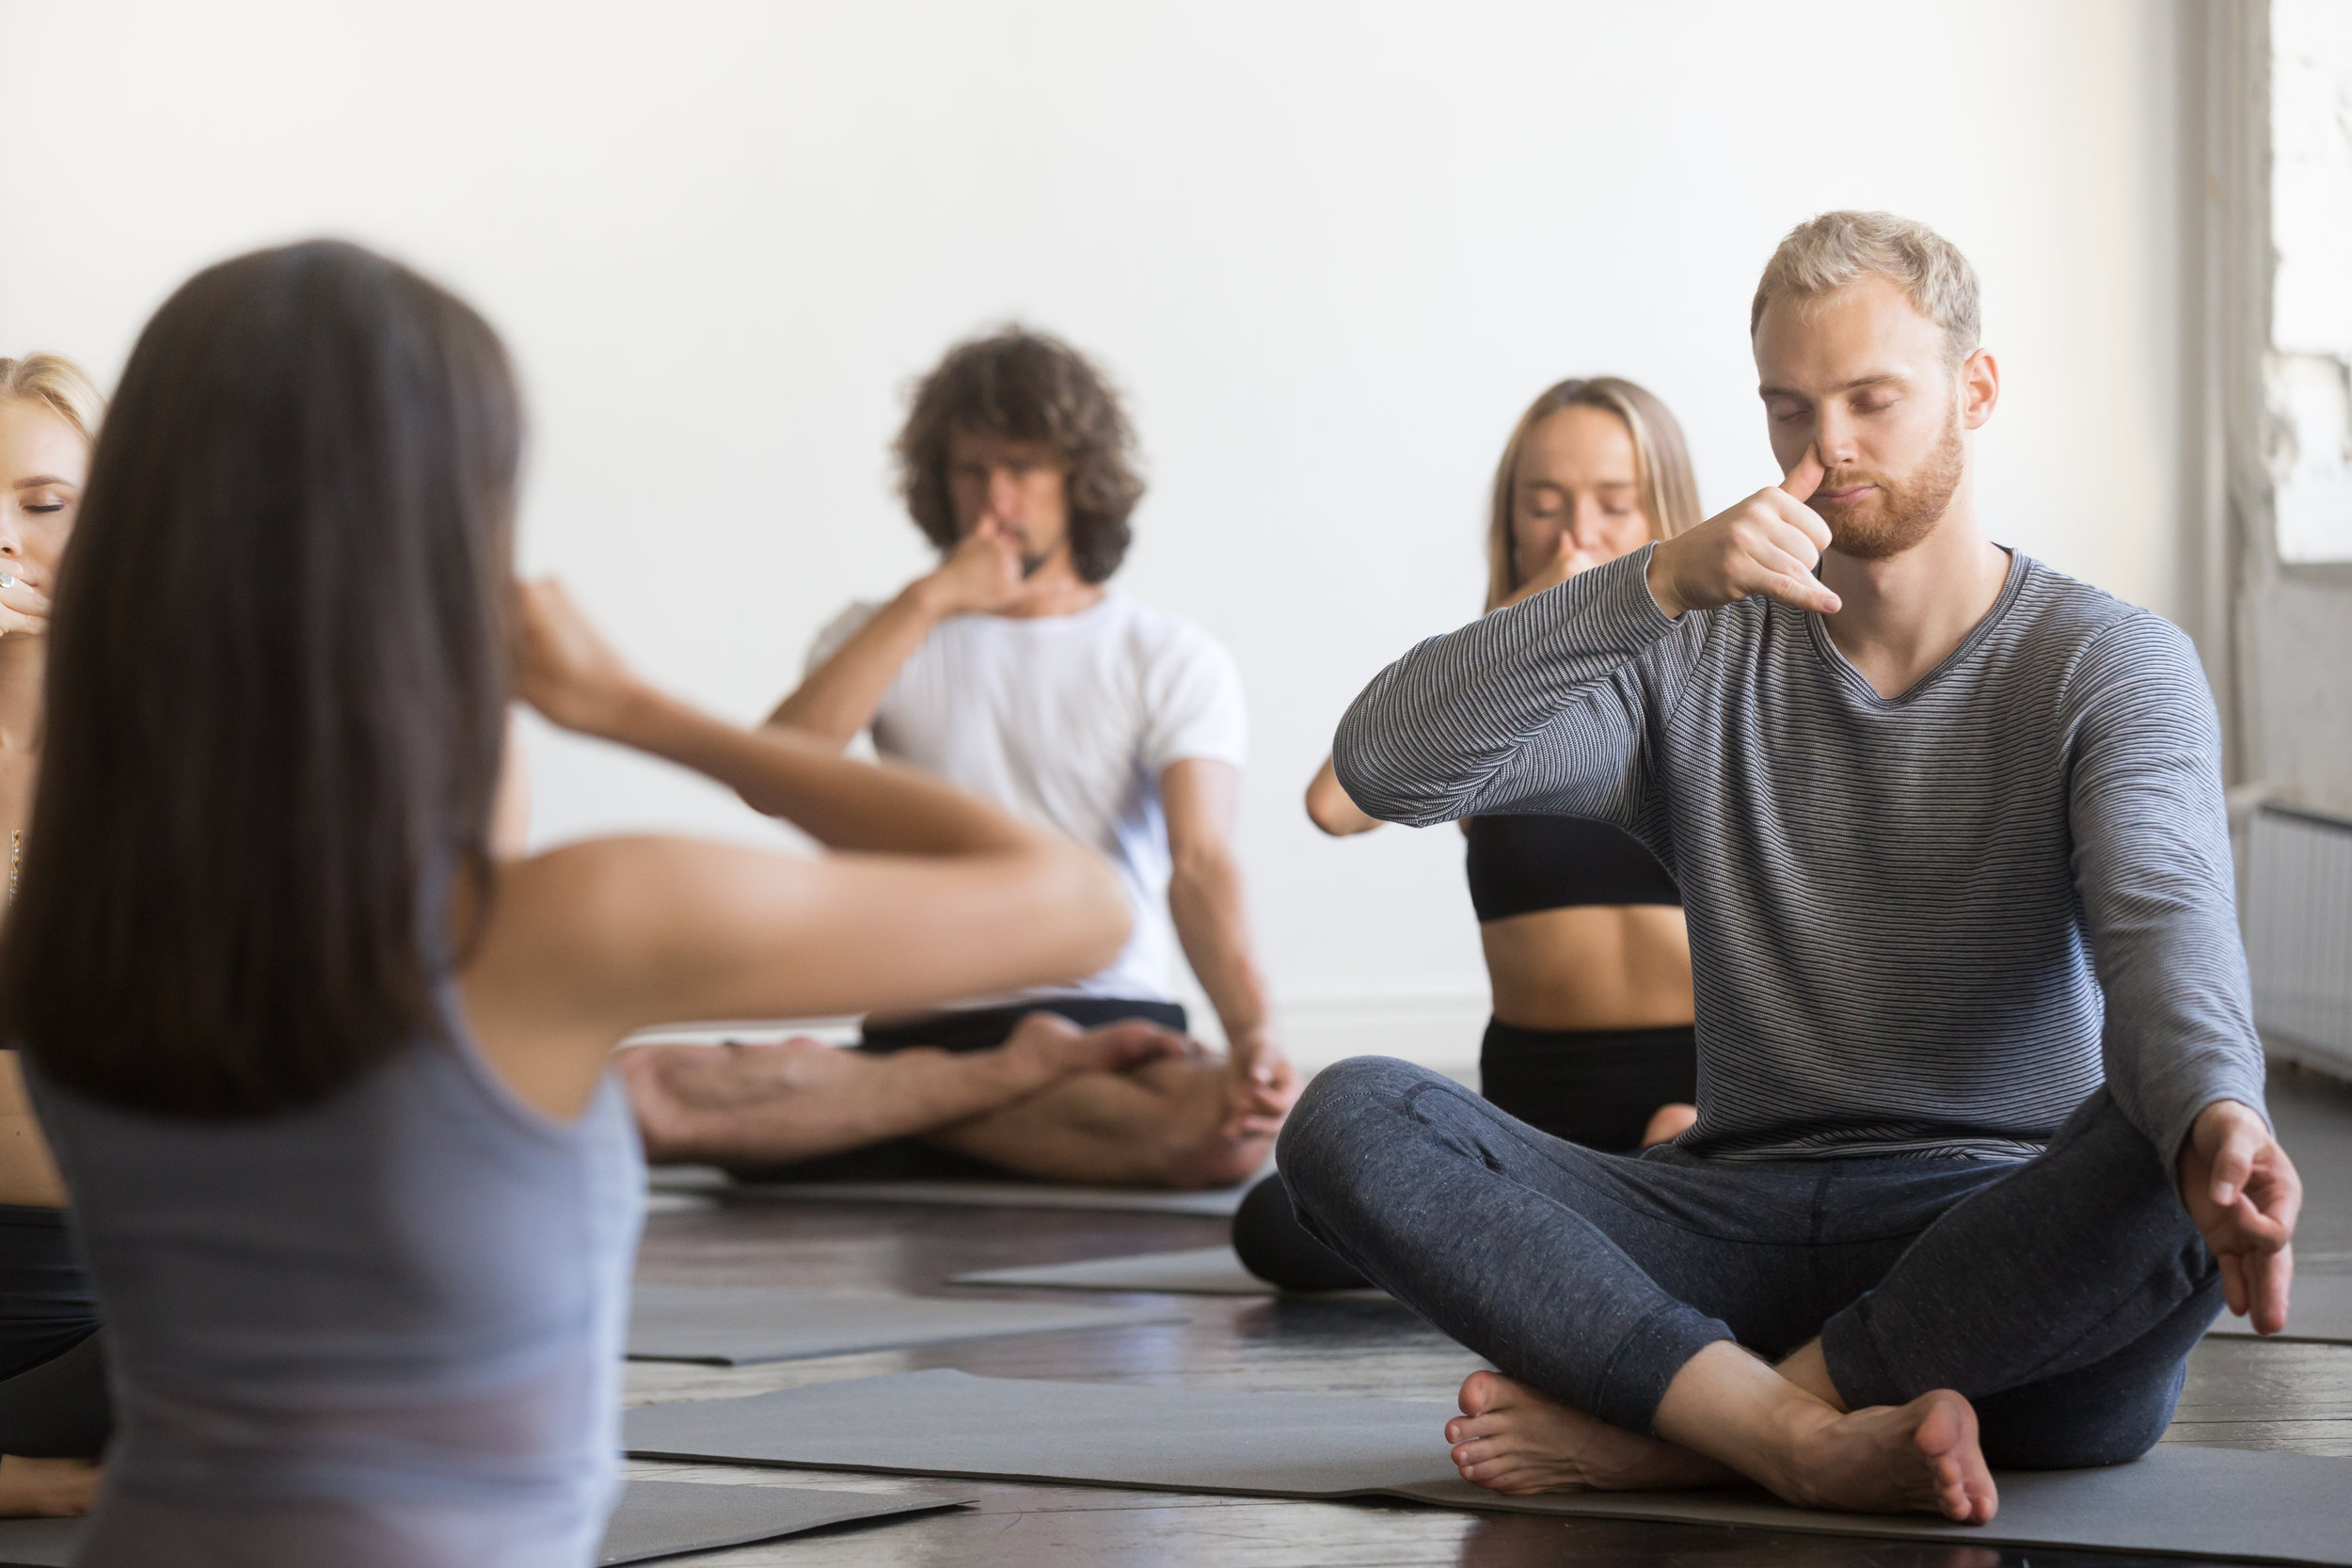 Yoga For Depression - Workshop with Kate McReynolds LMHC